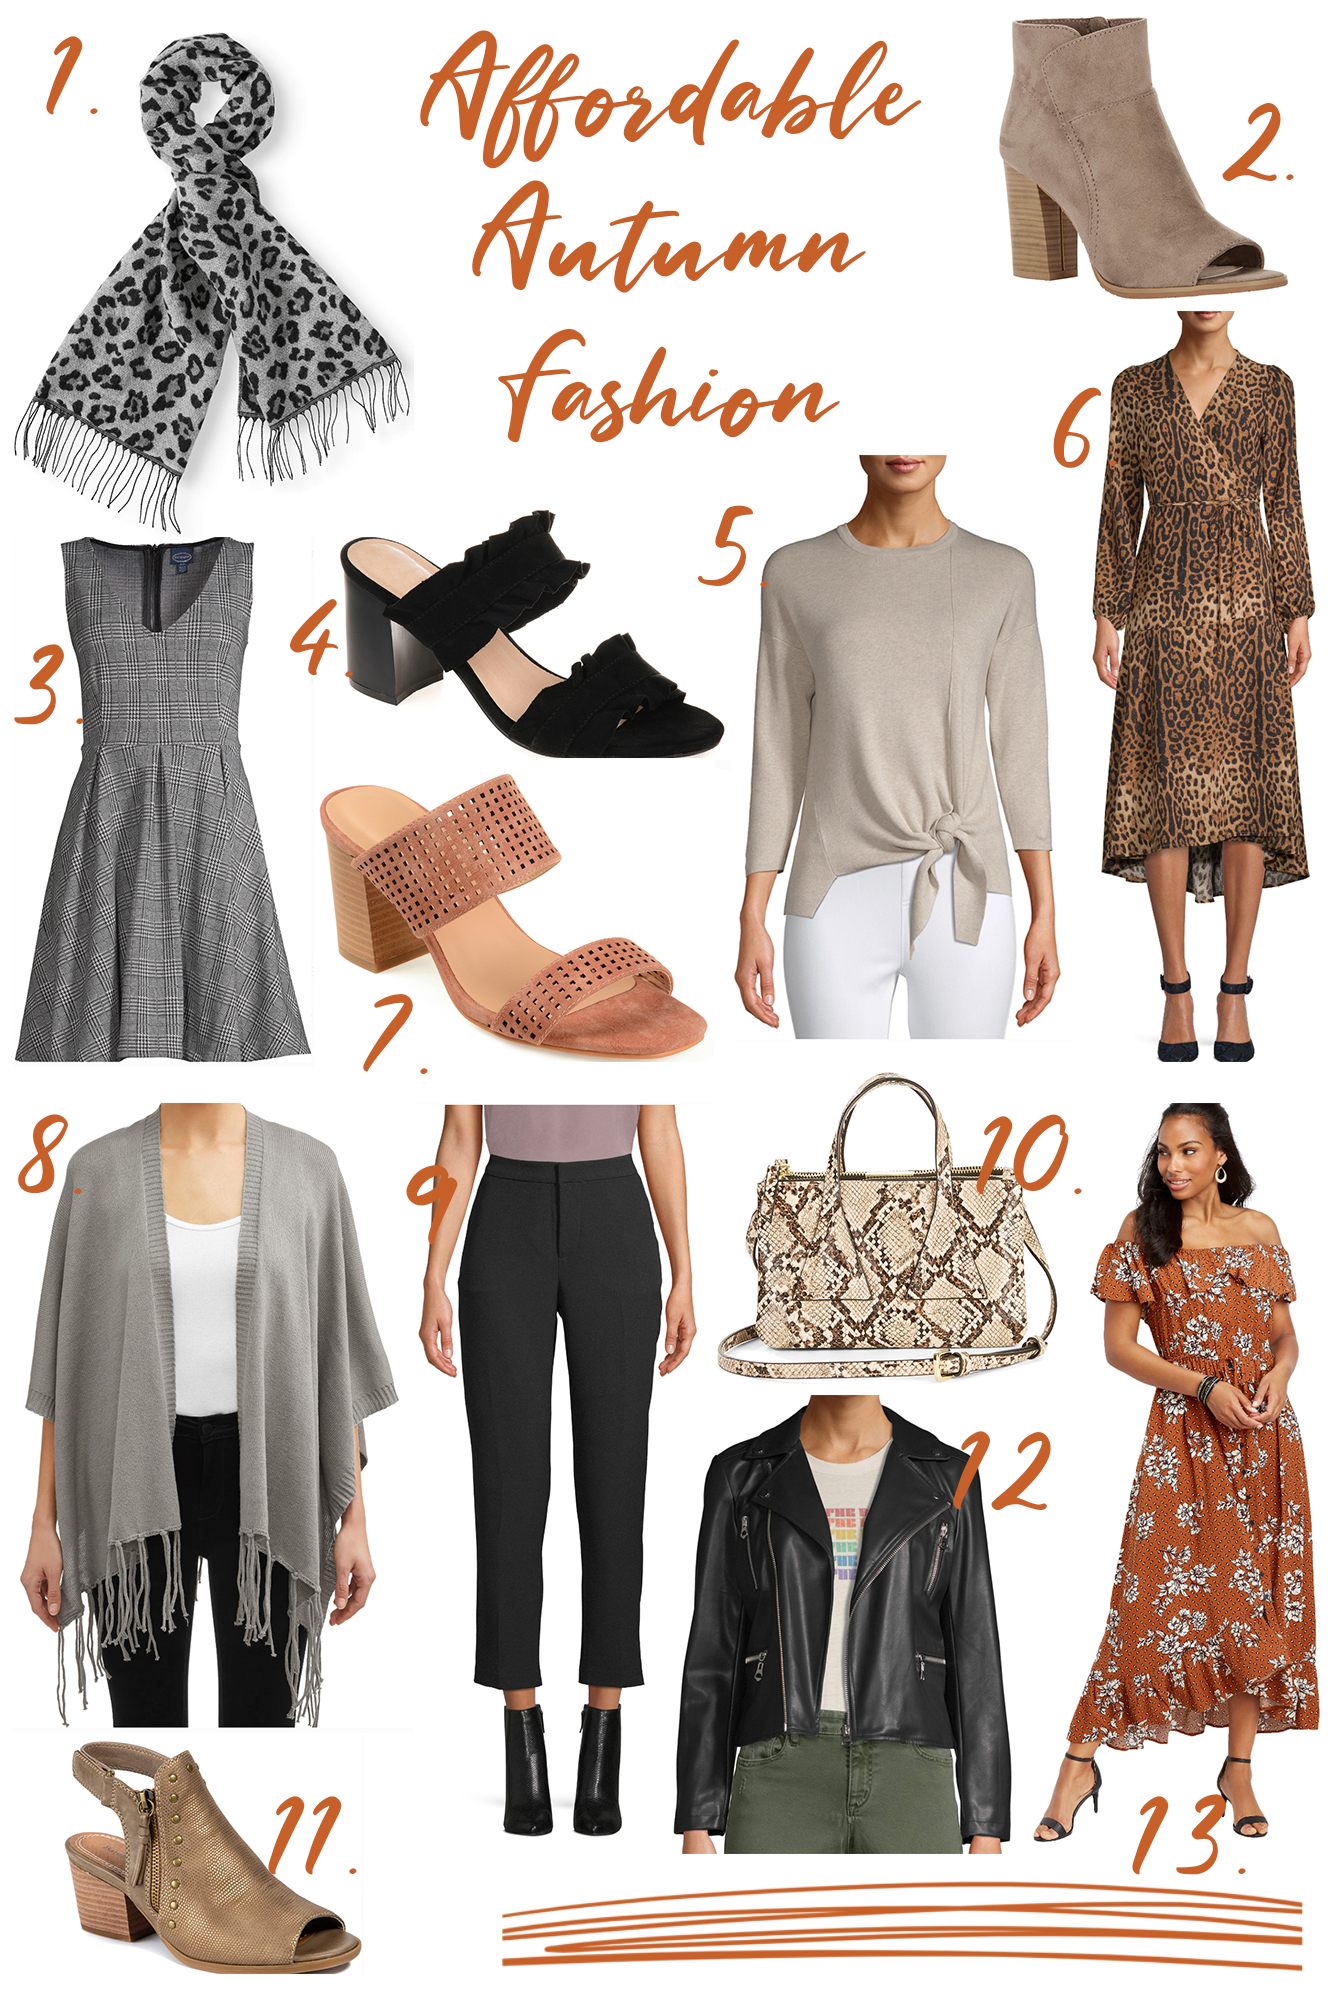 Fall To-Do List & Affordable Autumn Fashion - Harvest time is one of my favorite seasons.. I rounded up the best Fall activities & clothing options for you!